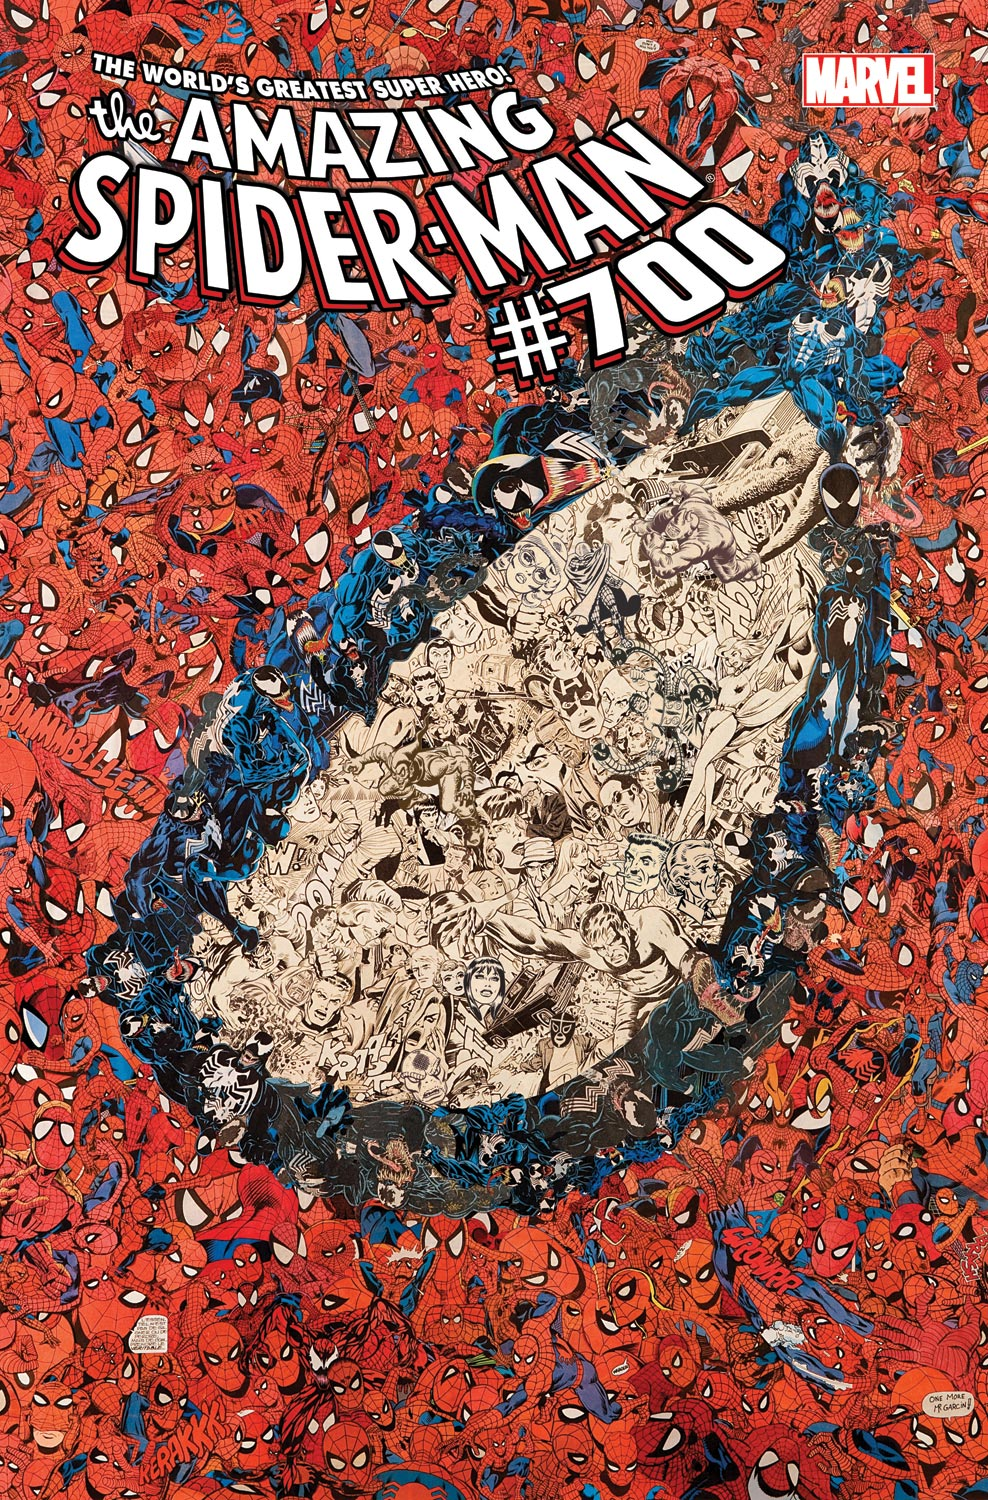 Amazing Spider-Man (1999) #700